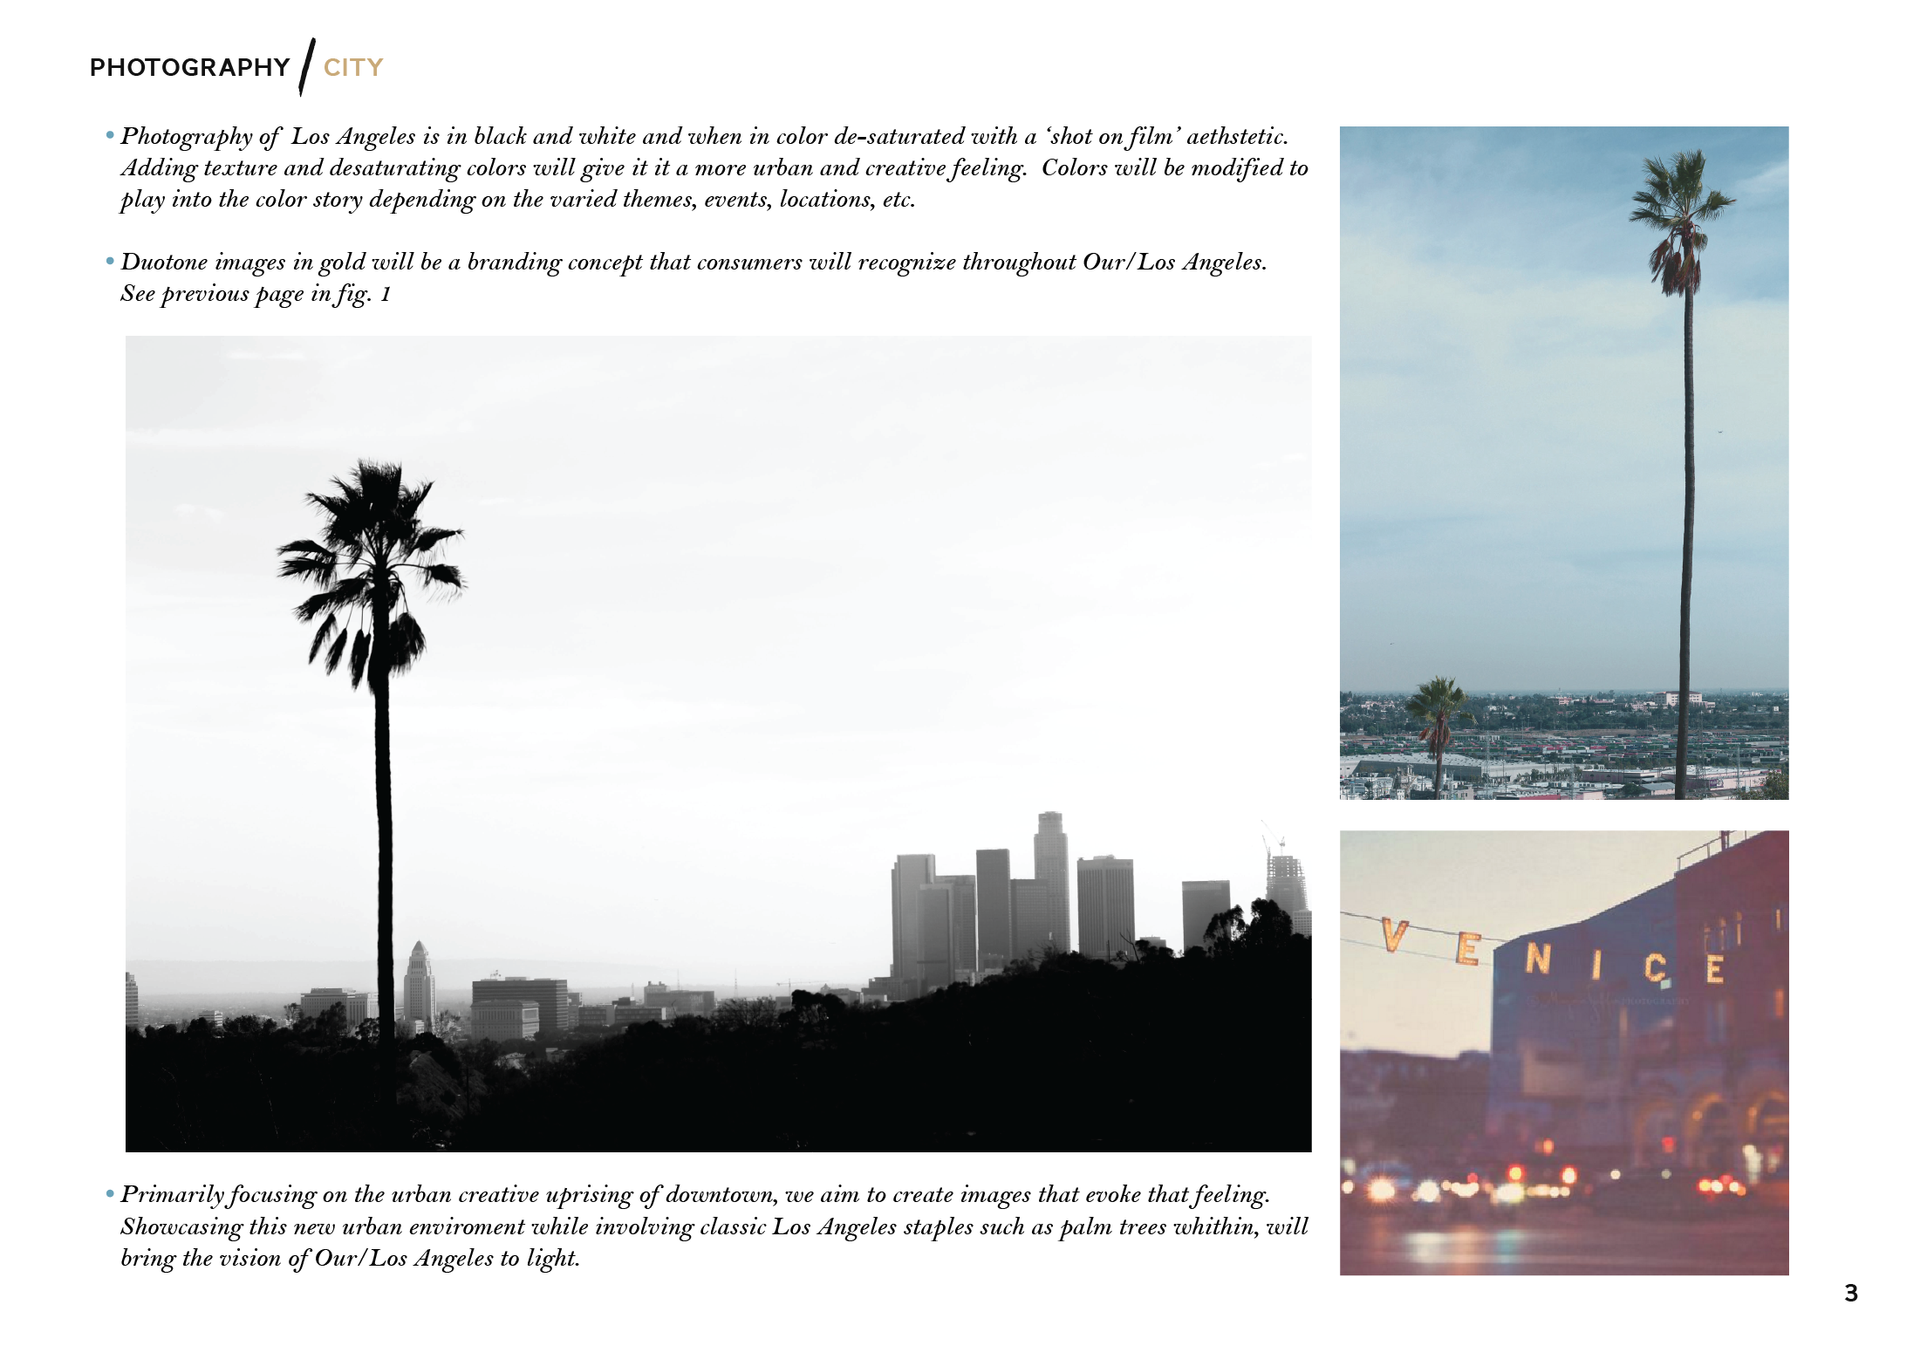 Our Los Angeles Brand Book 0319-03.png